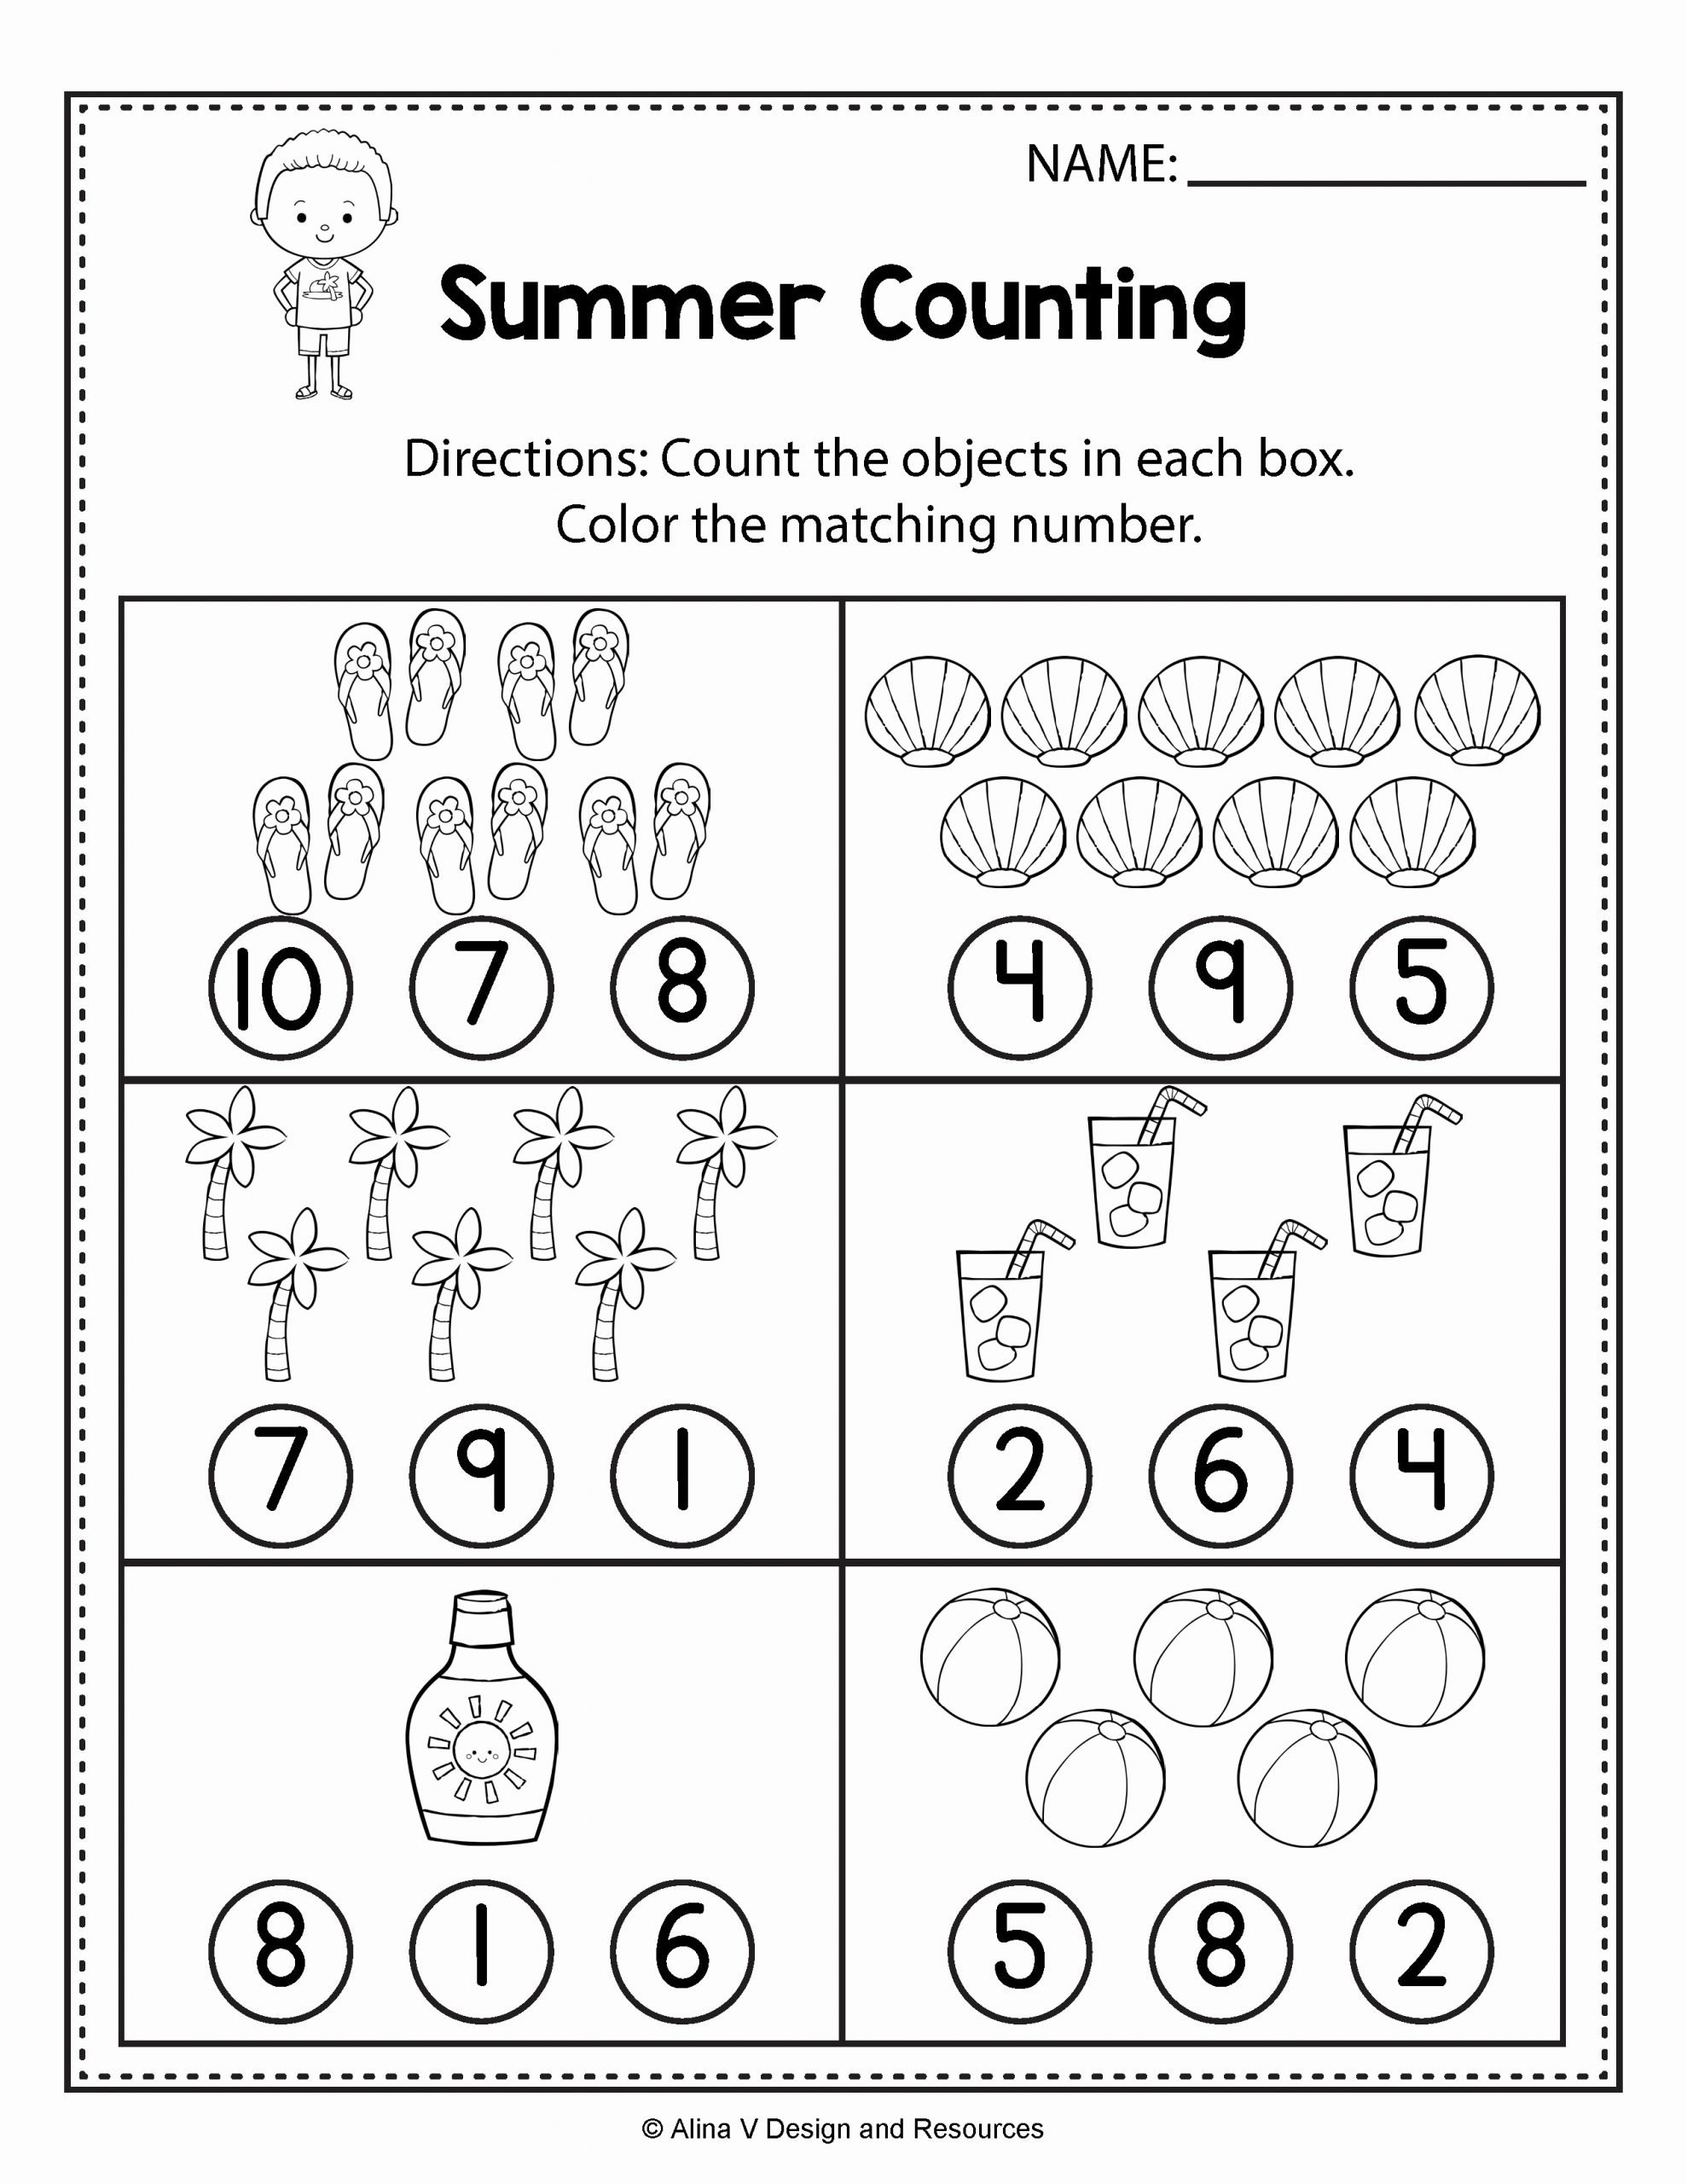 Mathematics Worksheets for Preschoolers Best Of Counting Worksheets Summer Math Worksheets and Activities